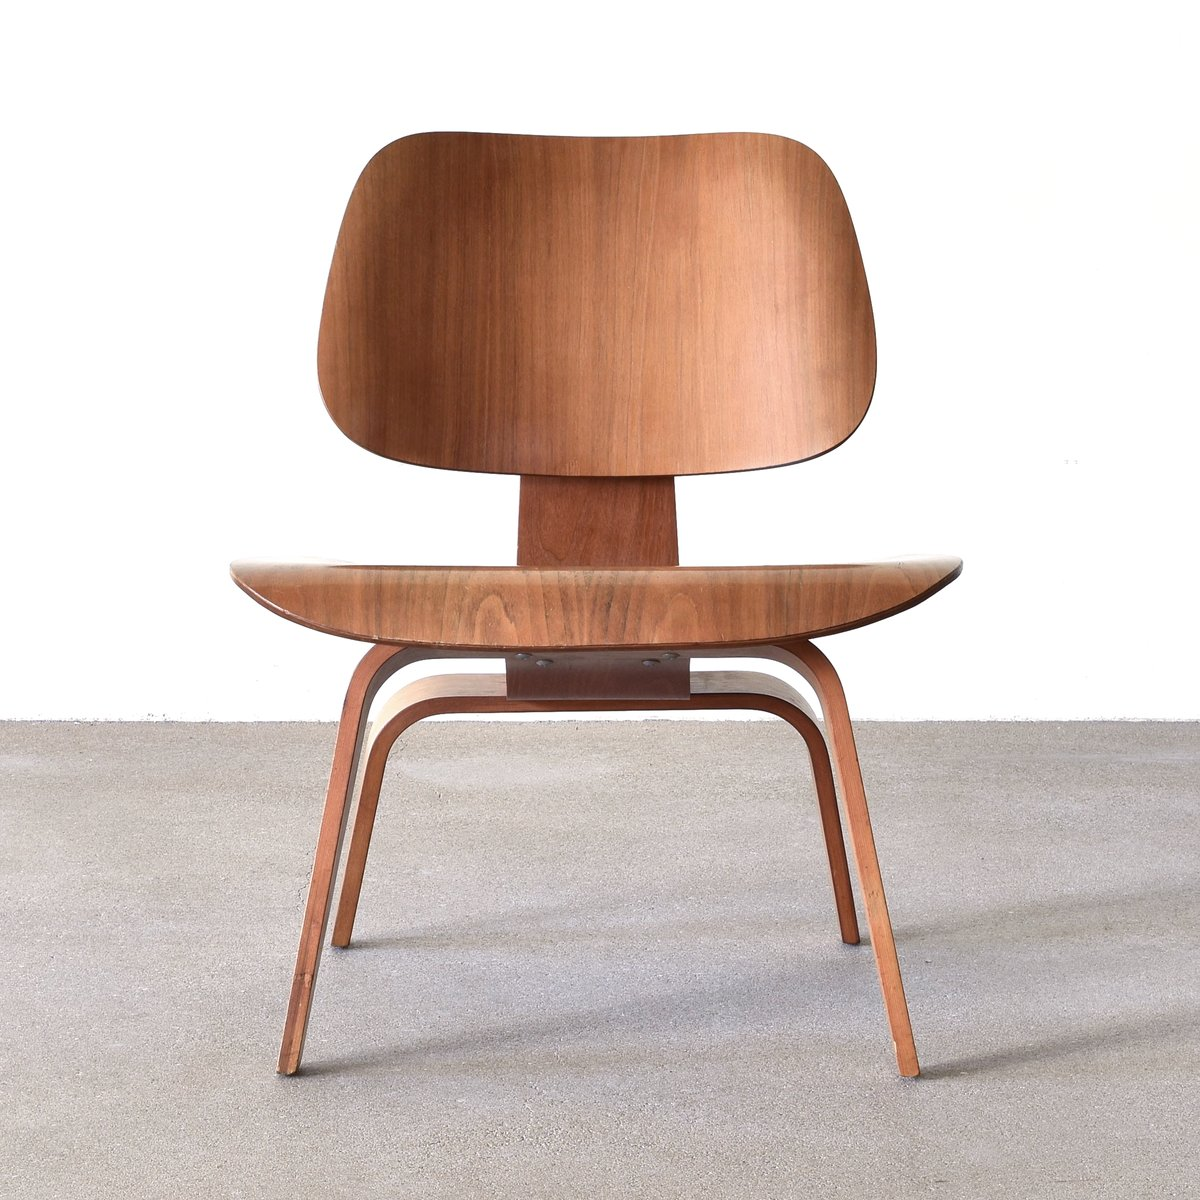 American lcw walnut lounge chair by charles ray eames for herman miller - Eames chair herman miller ...